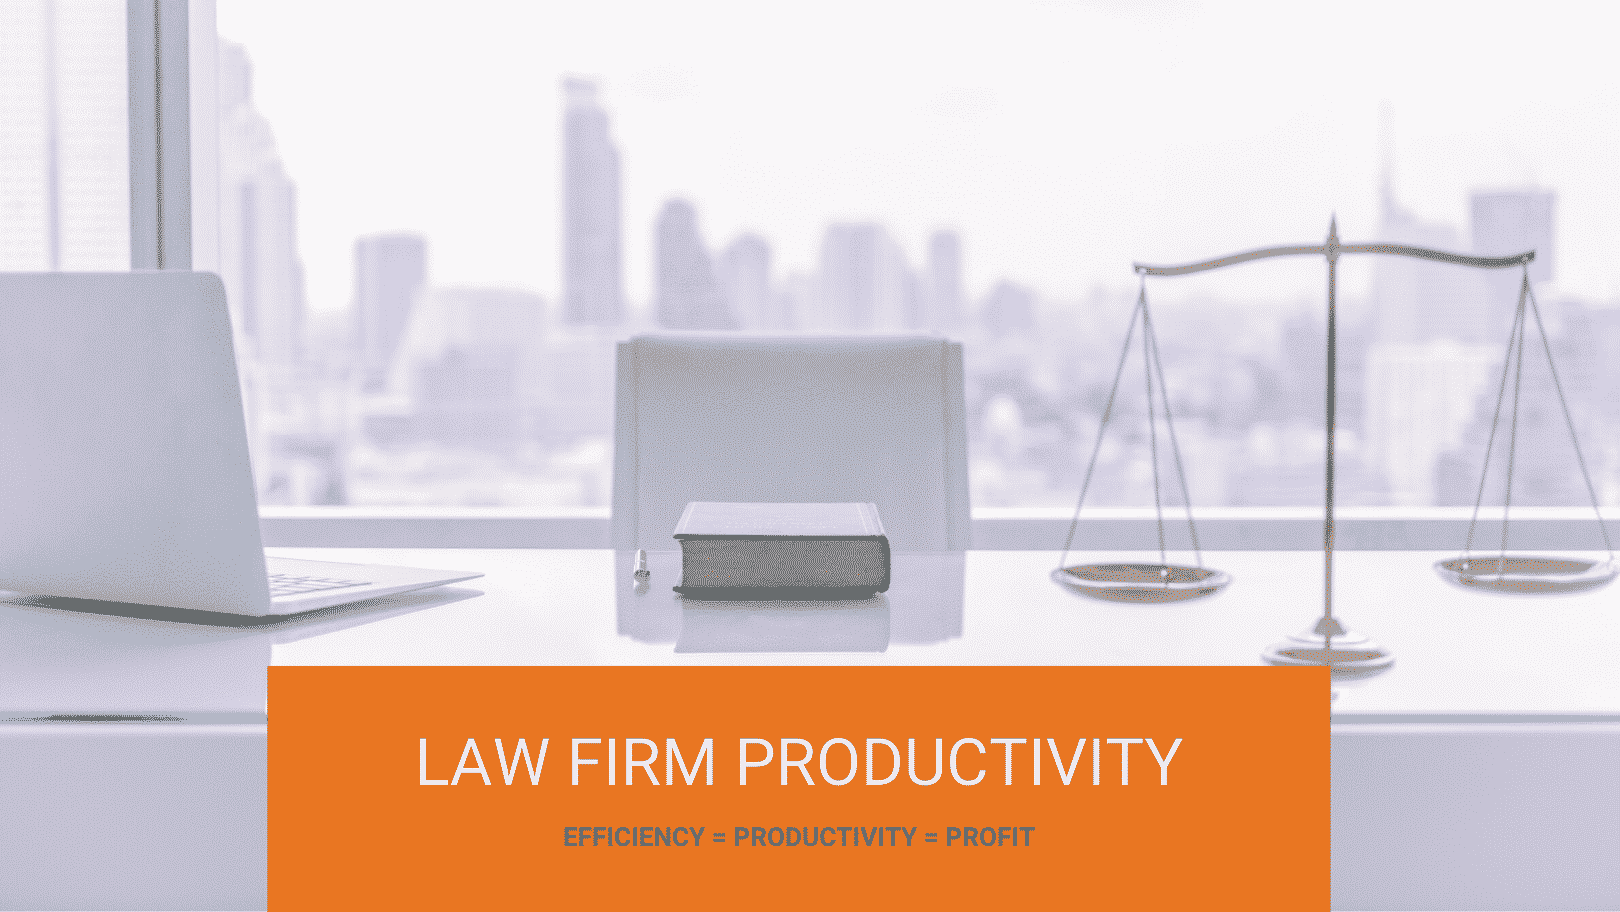 Law firm productivity - cover image